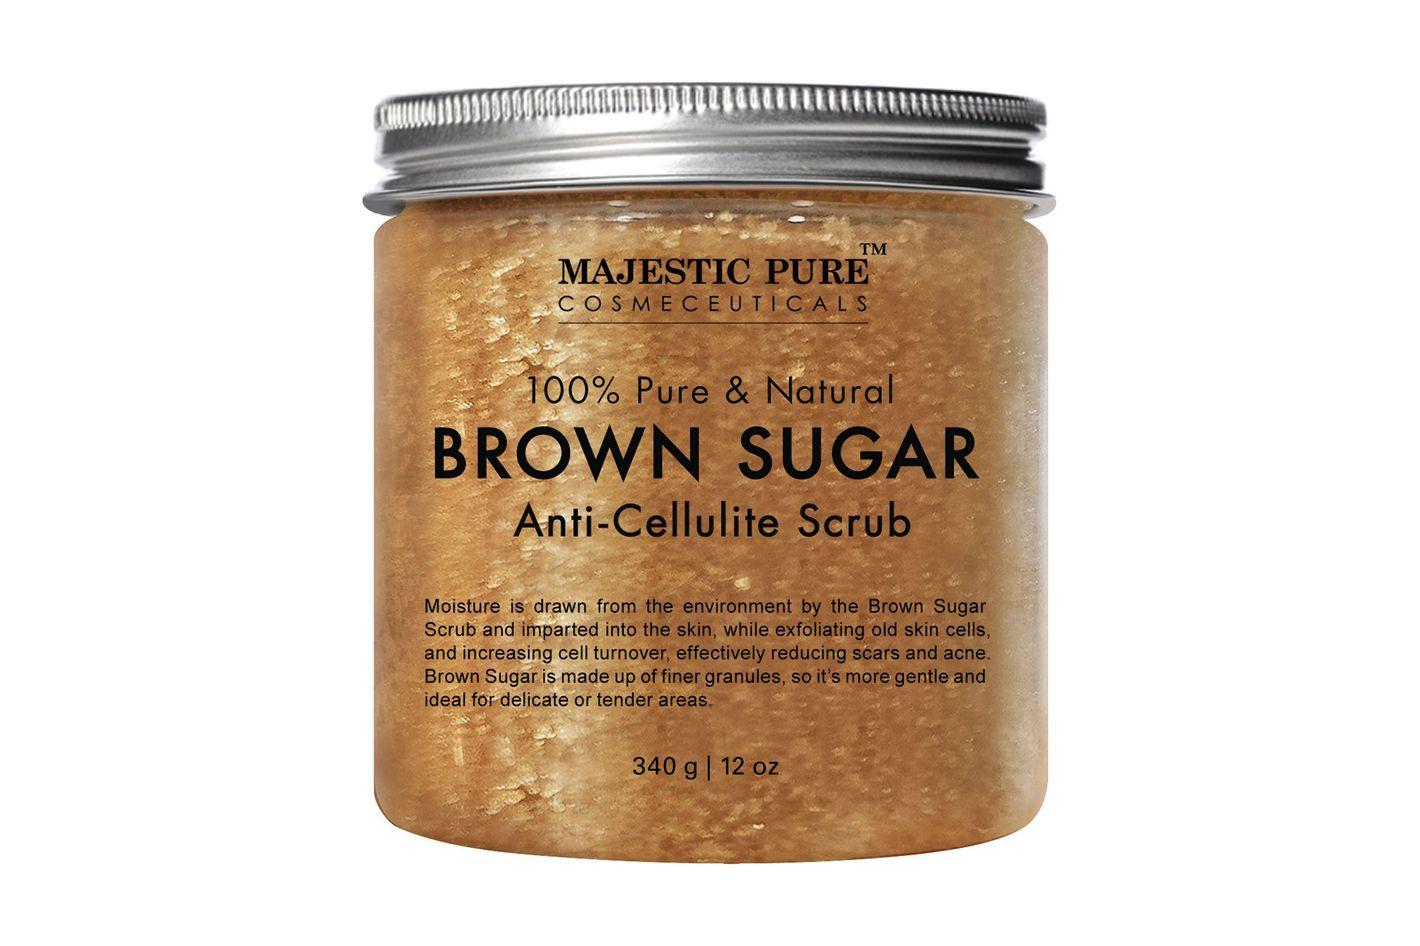 Majestic Pure Brown Sugar Anti-Cellulite Scrub